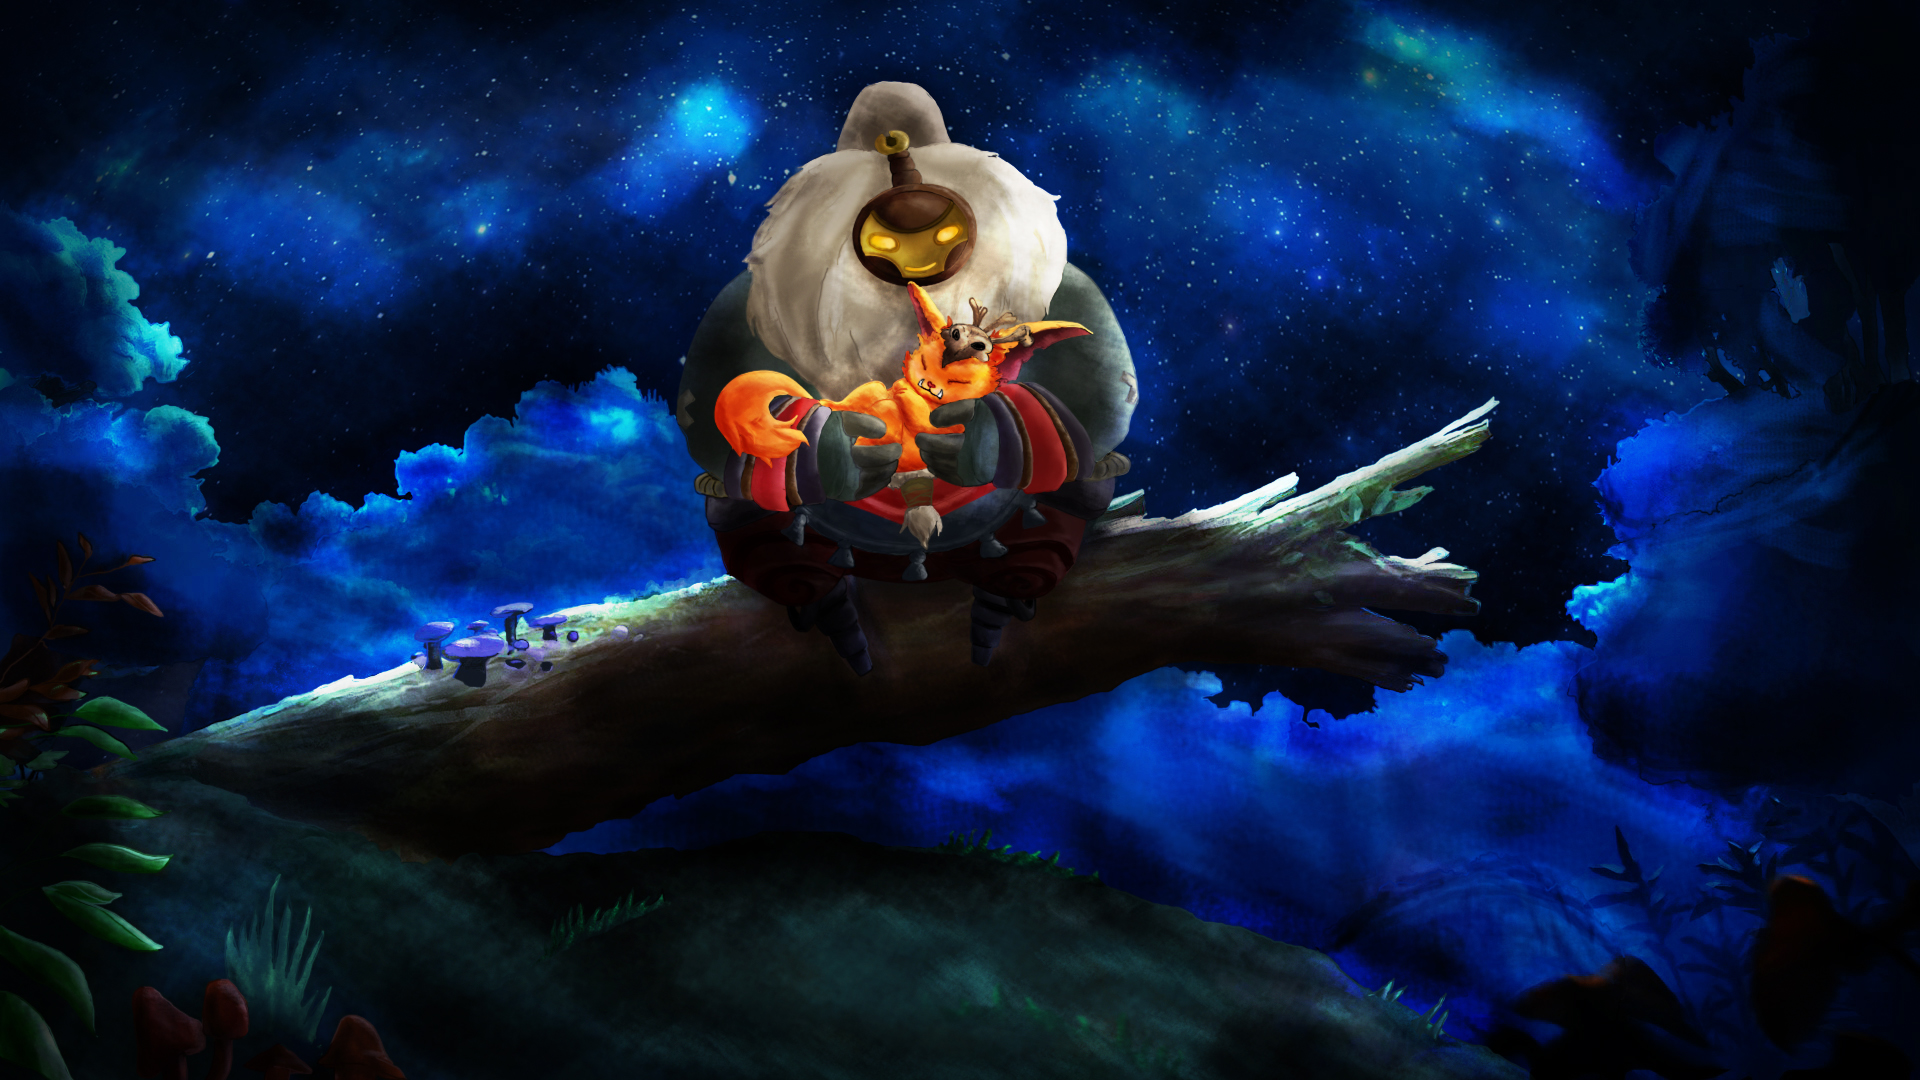 Ori And The Blind Forest Hd Wallpaper: Gnar And The Blind Forest By Hawthorne91 On DeviantArt